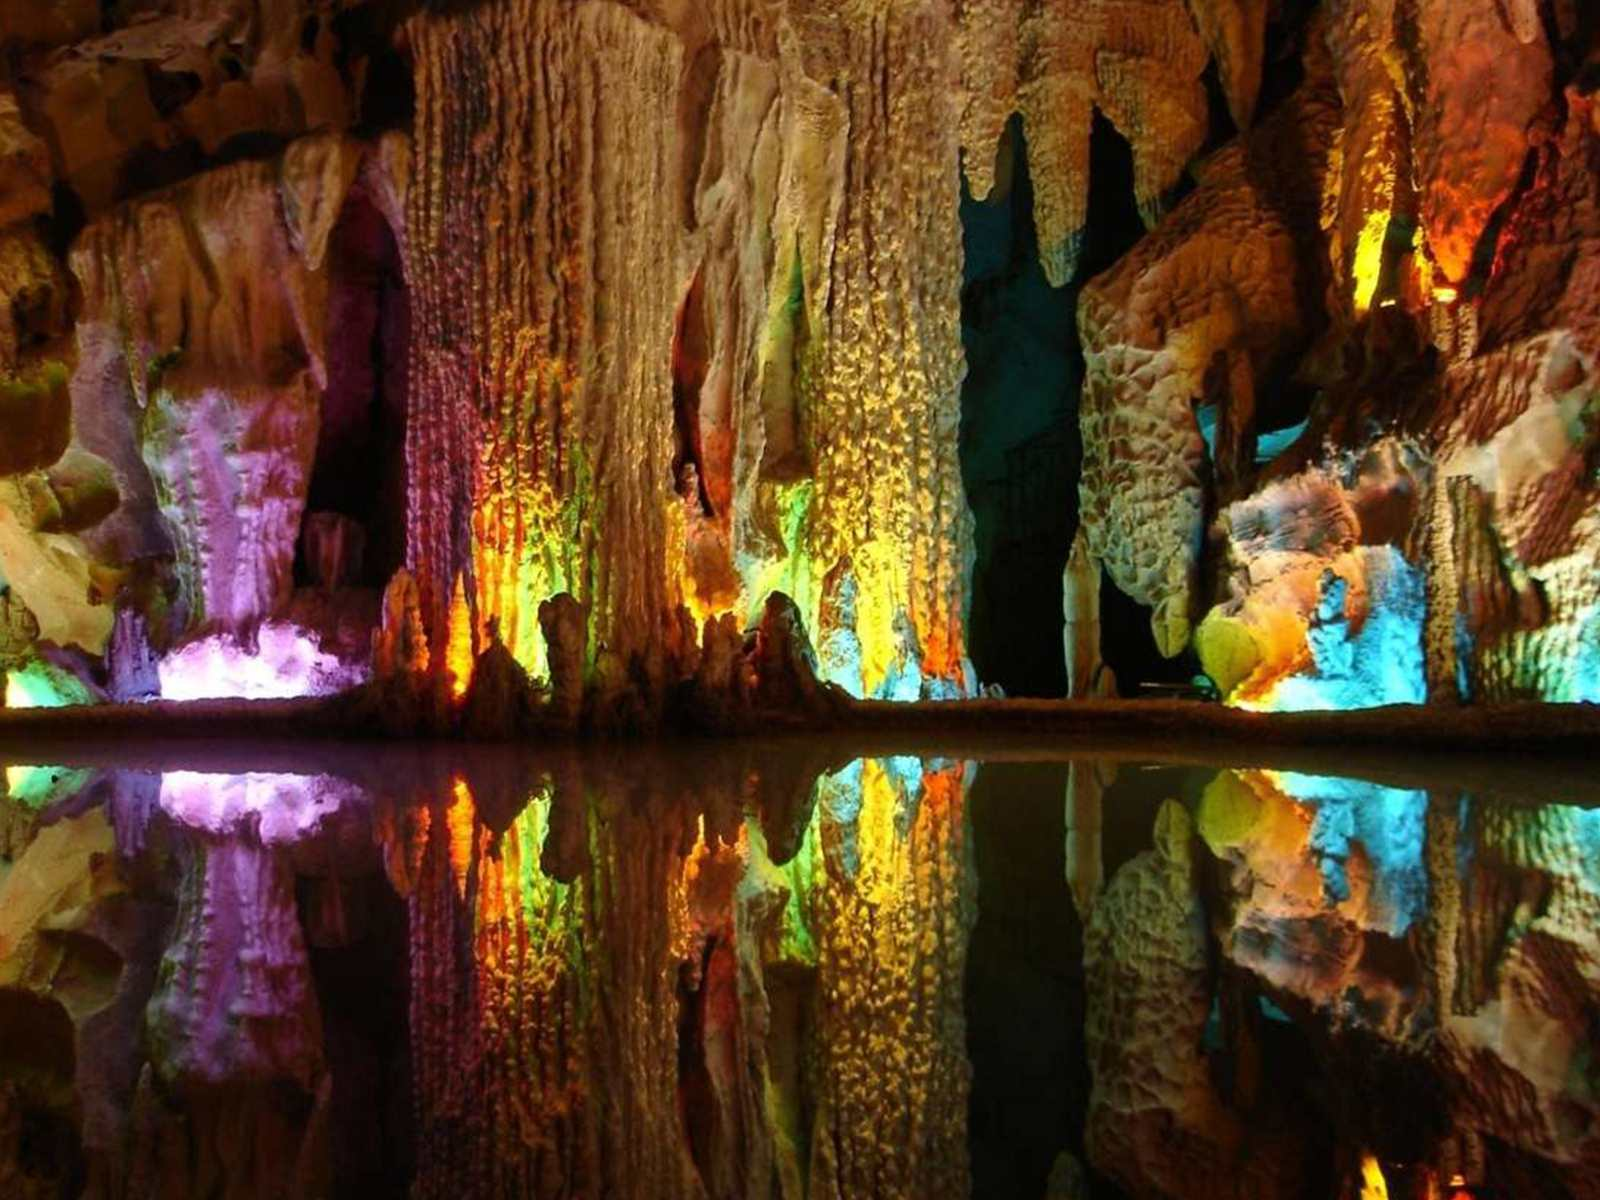 Alisadr Cave is located 75 kilometers northwest of Hamadan in the Zagros Mountains